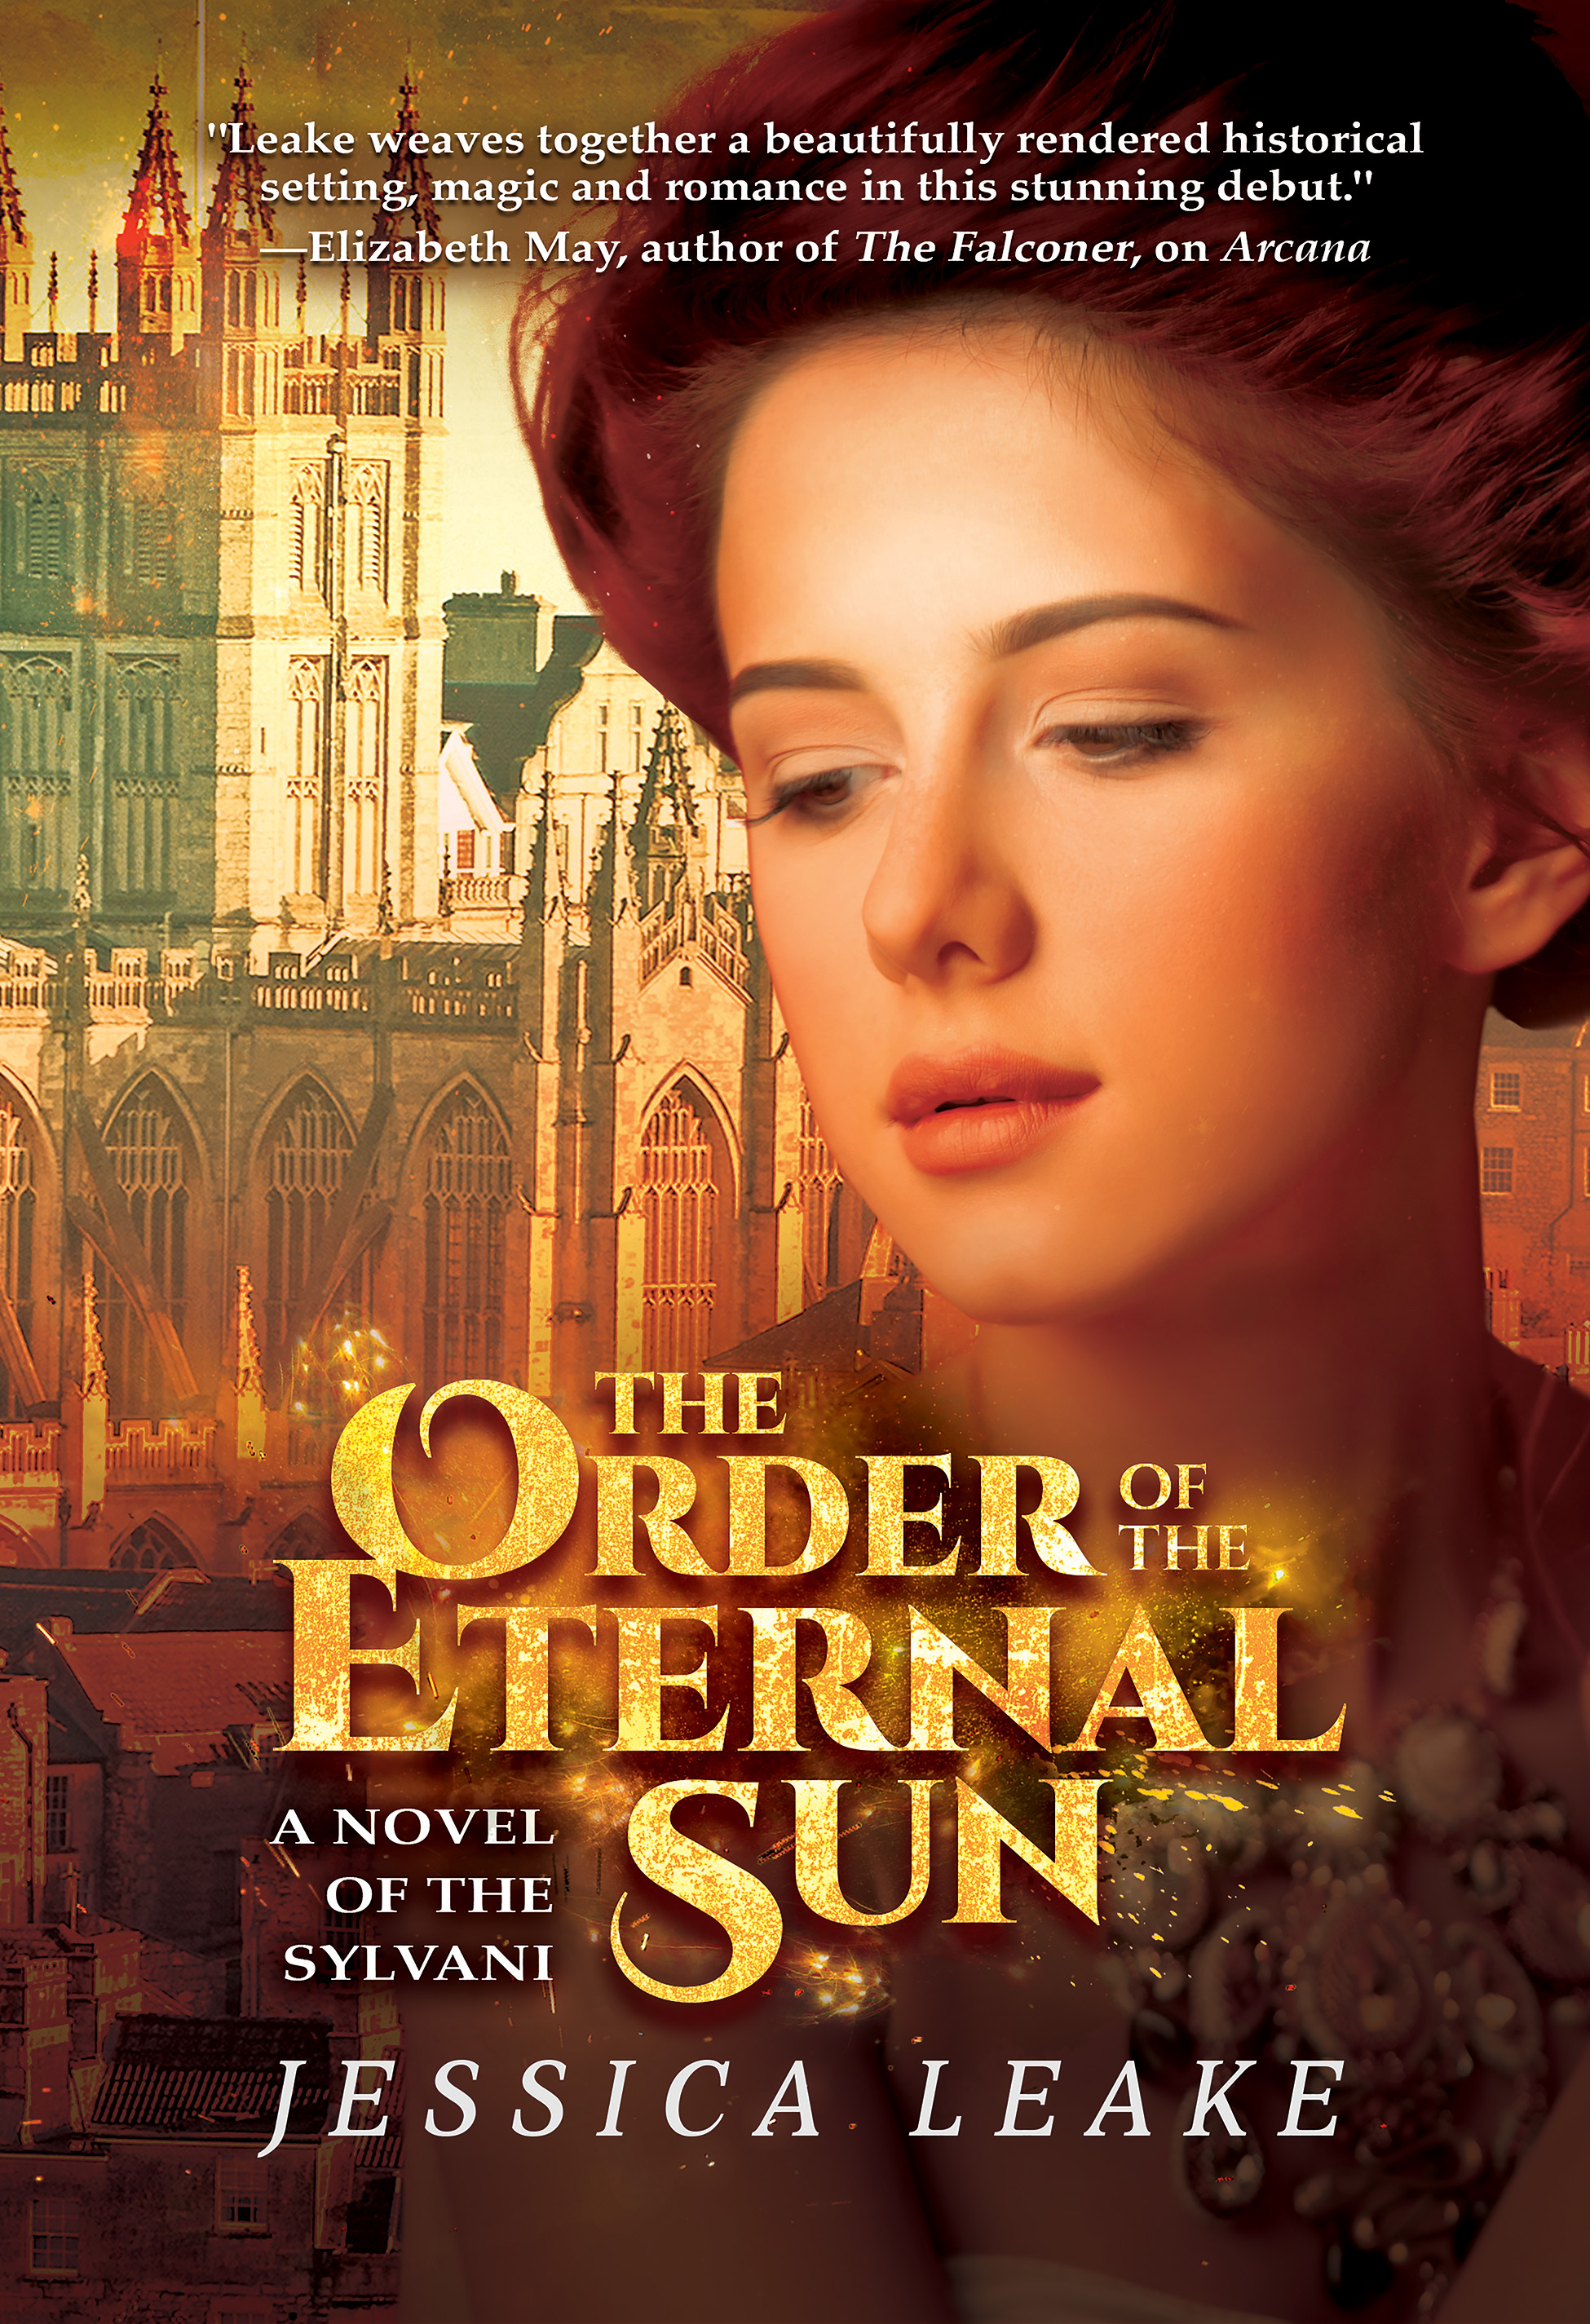 Order of the Eternal Sun